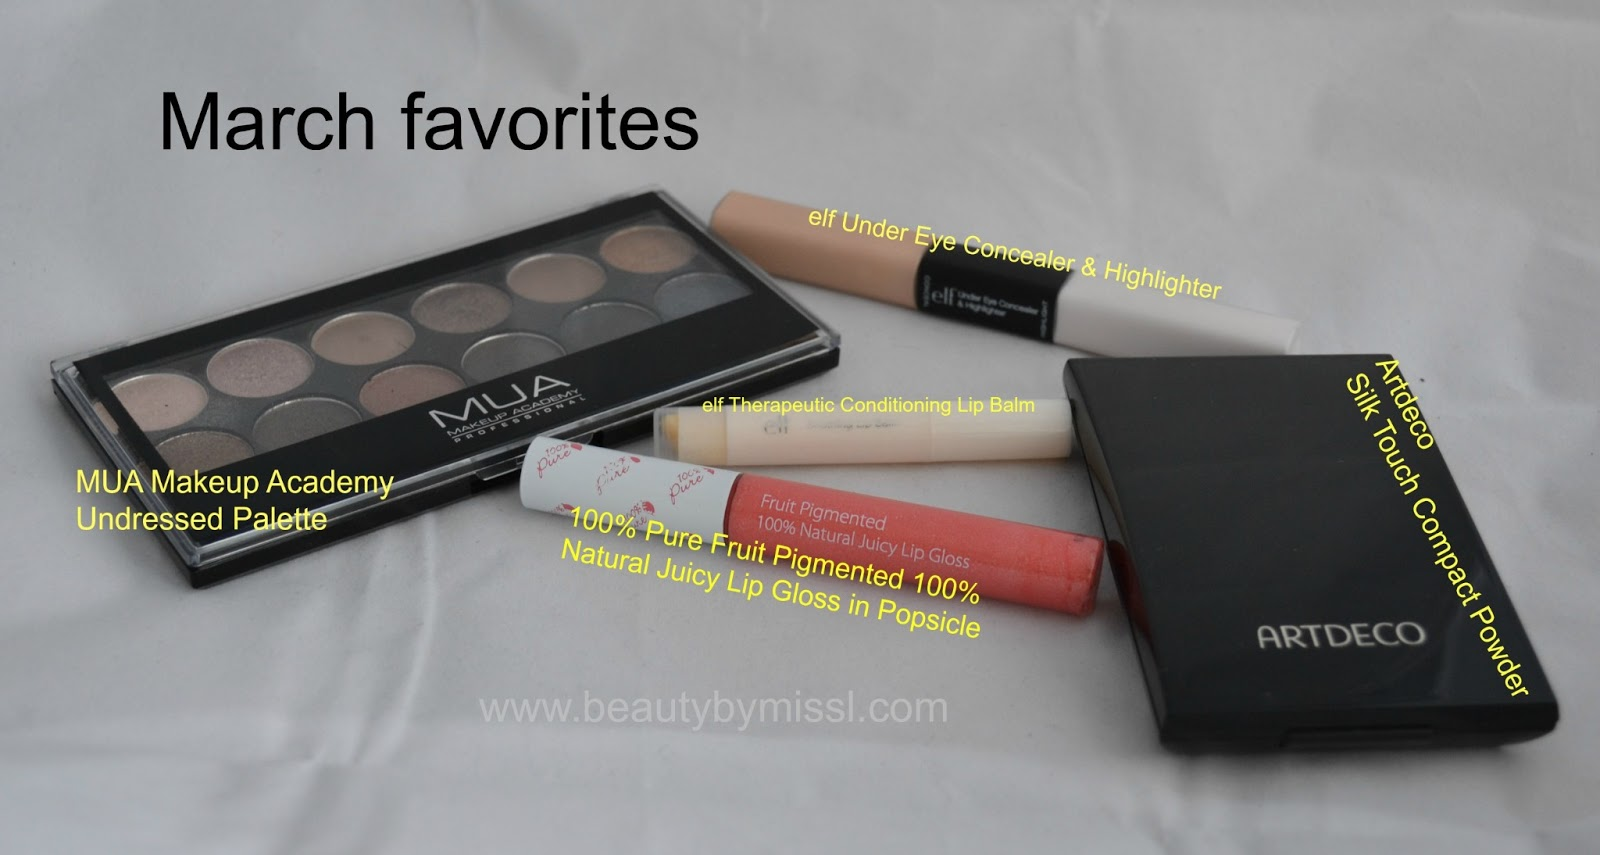 mua undressed palette, 100% pure lipgloss, artdeco powder,